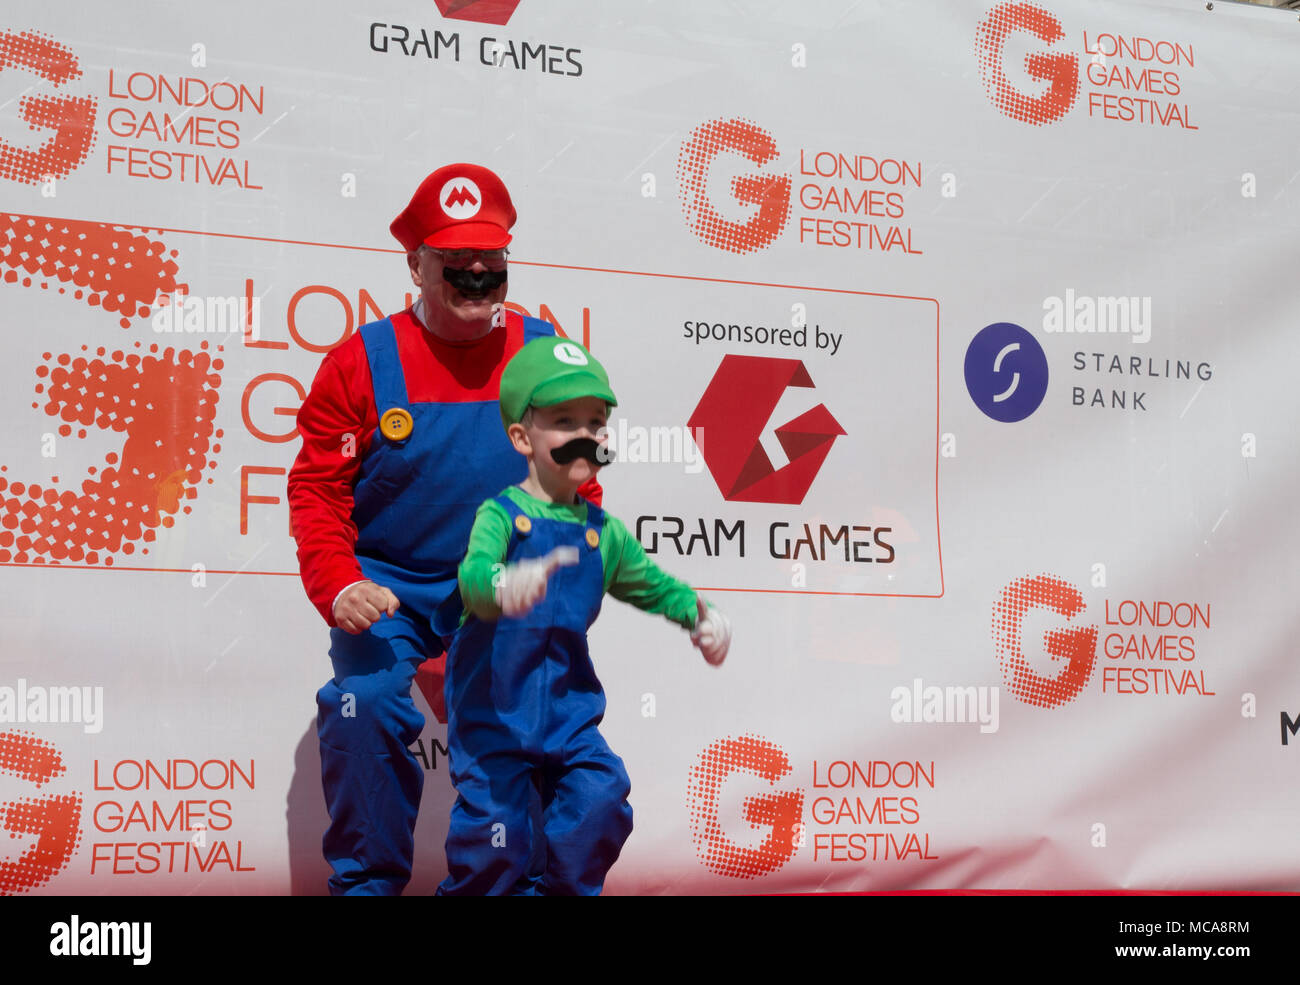 London, Uniteld Kingdom, April 14, 2018: Number of people in games characters costumes on a final day of London Games Festival take to the streets of London in the Games Character Parade. Credit: Michal Busko/Alamy Live News - Stock Image